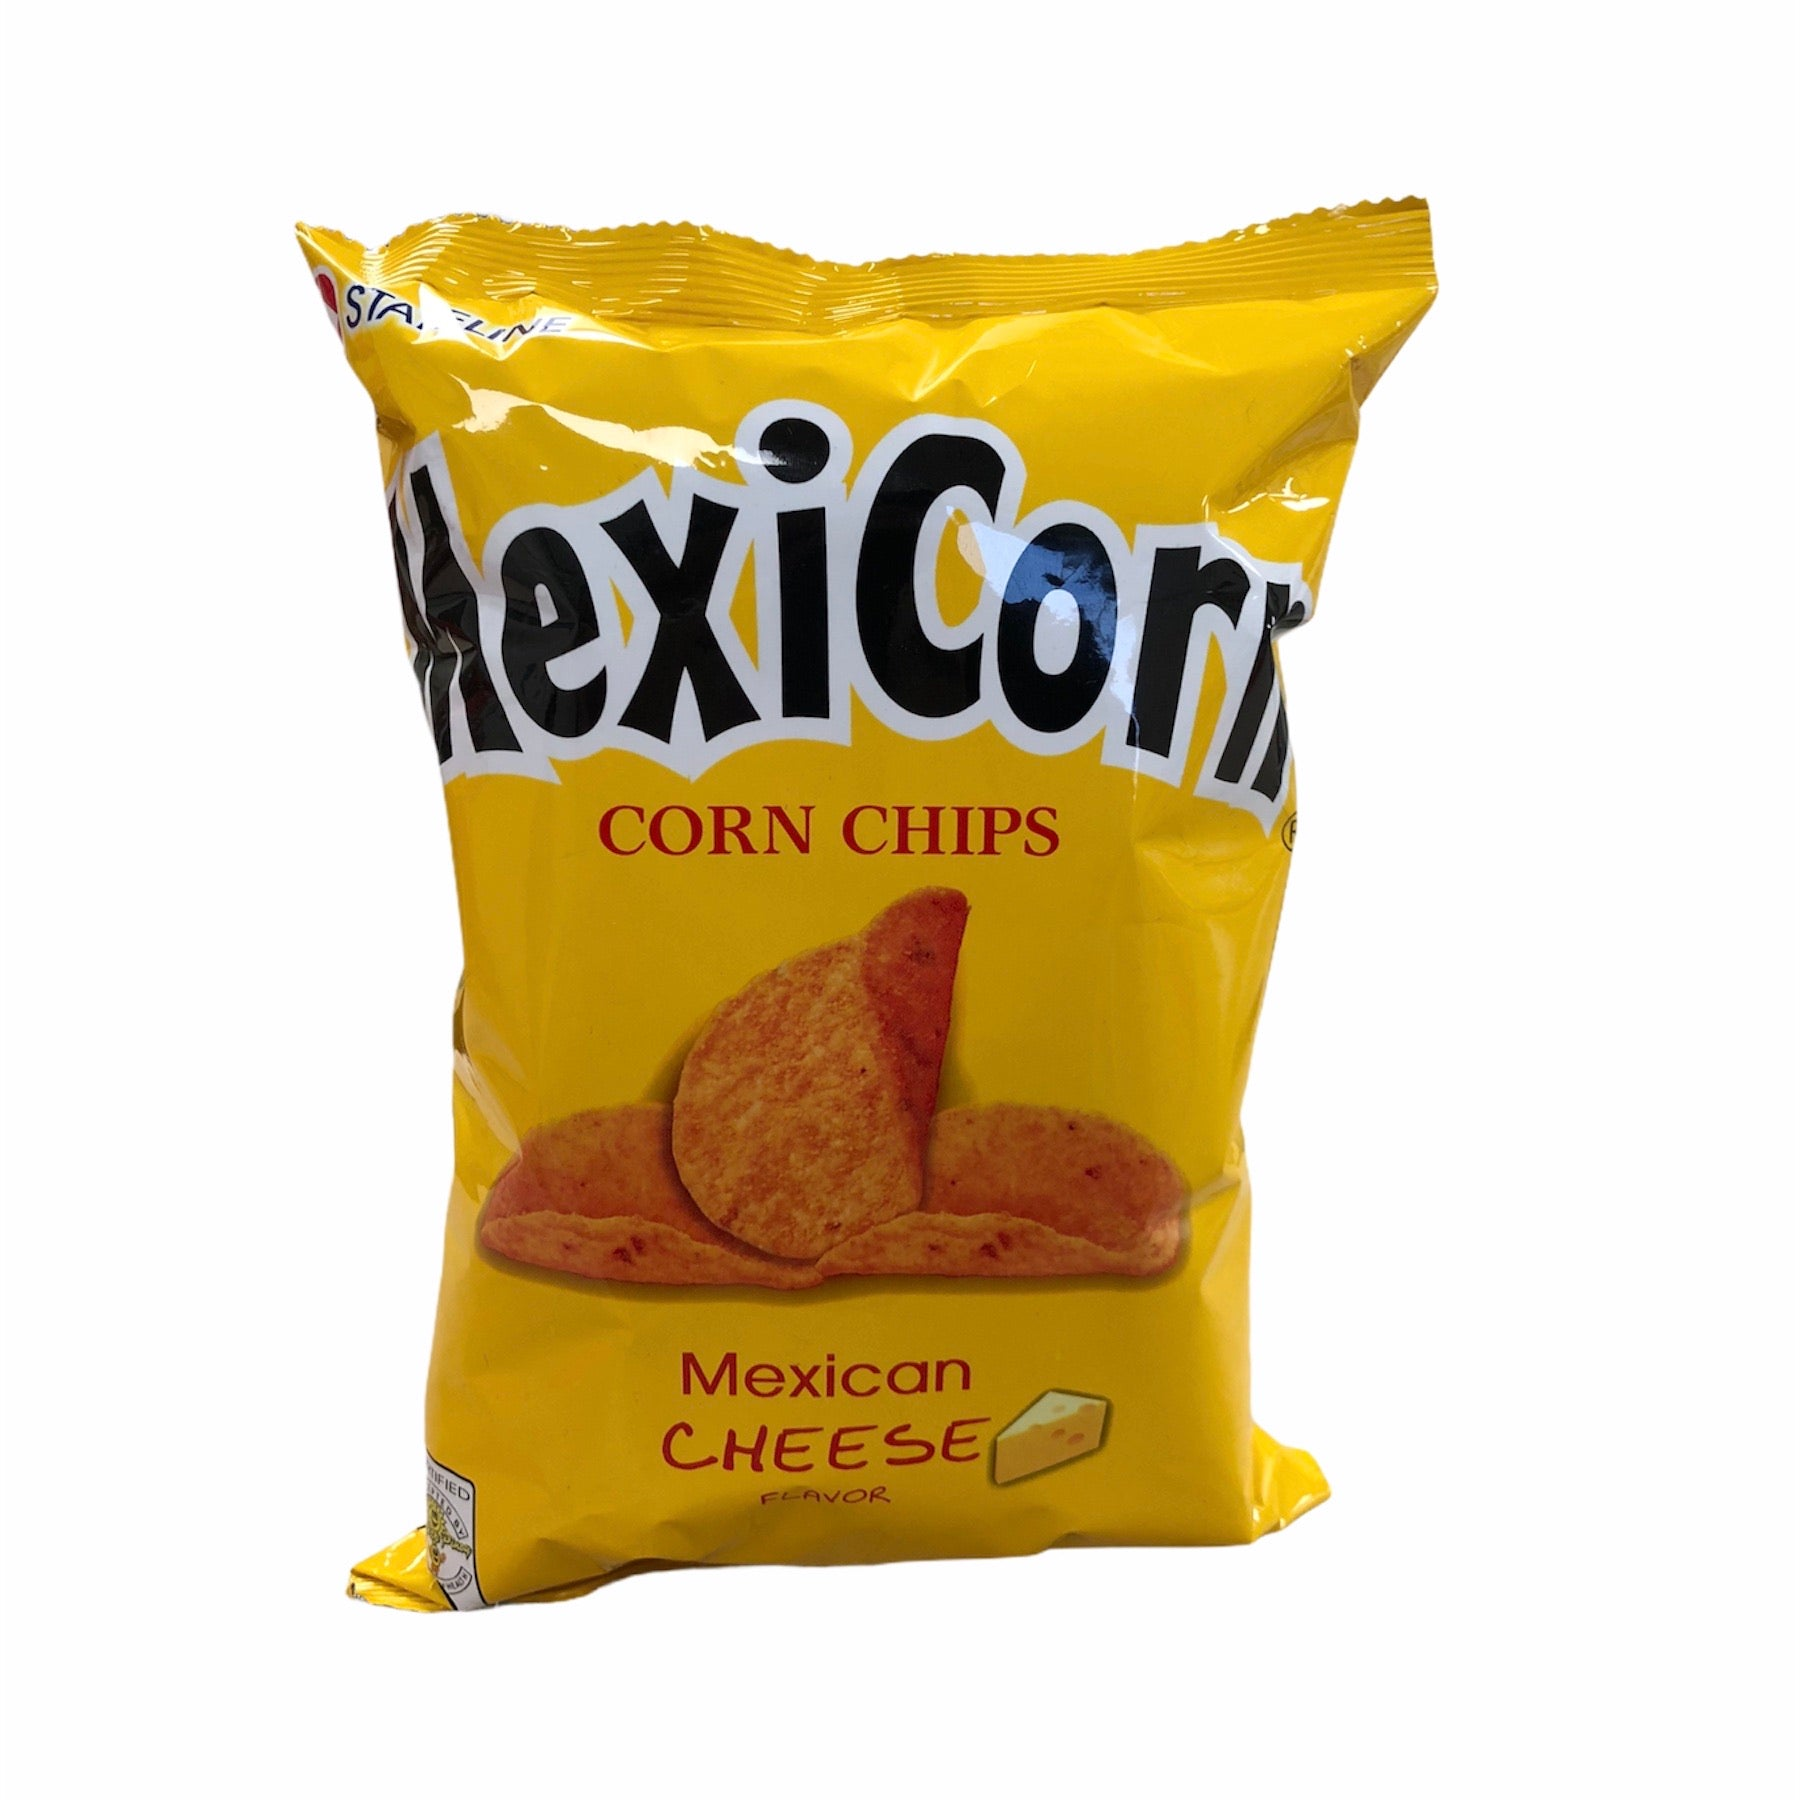 Stateline - MexiCorn Corn Chips Mexican Cheese Flavor 100 grams